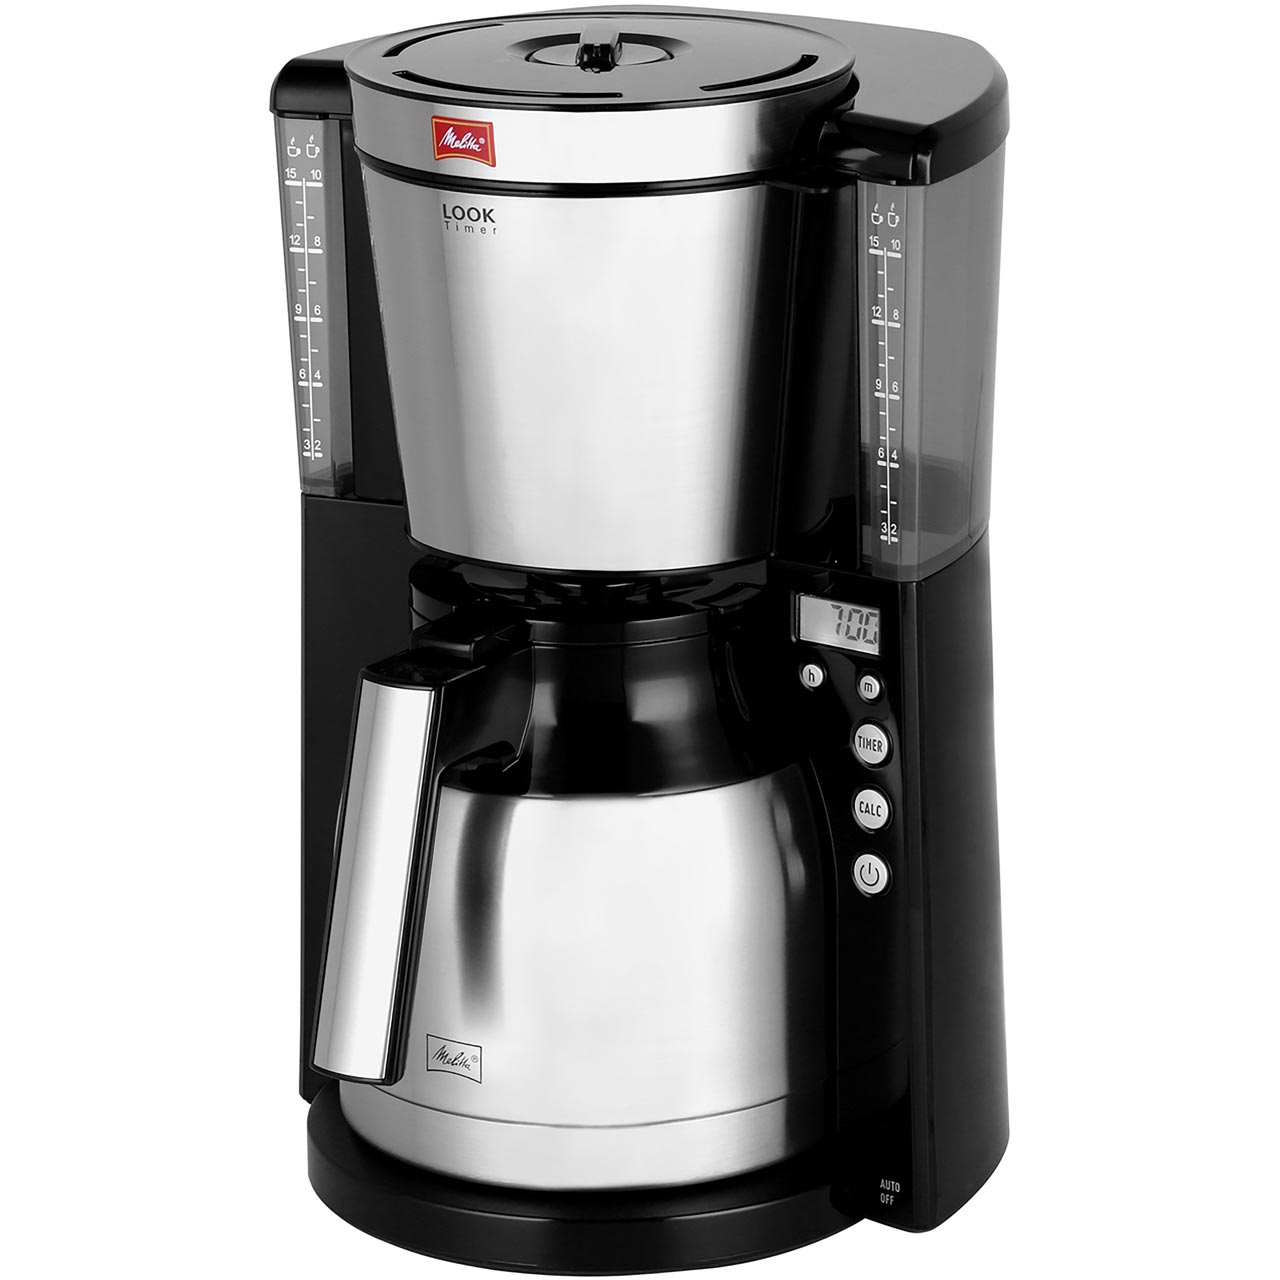 Melitta Look Iv Therm Timer 6764395 Filter Coffee Machine With Timer Black